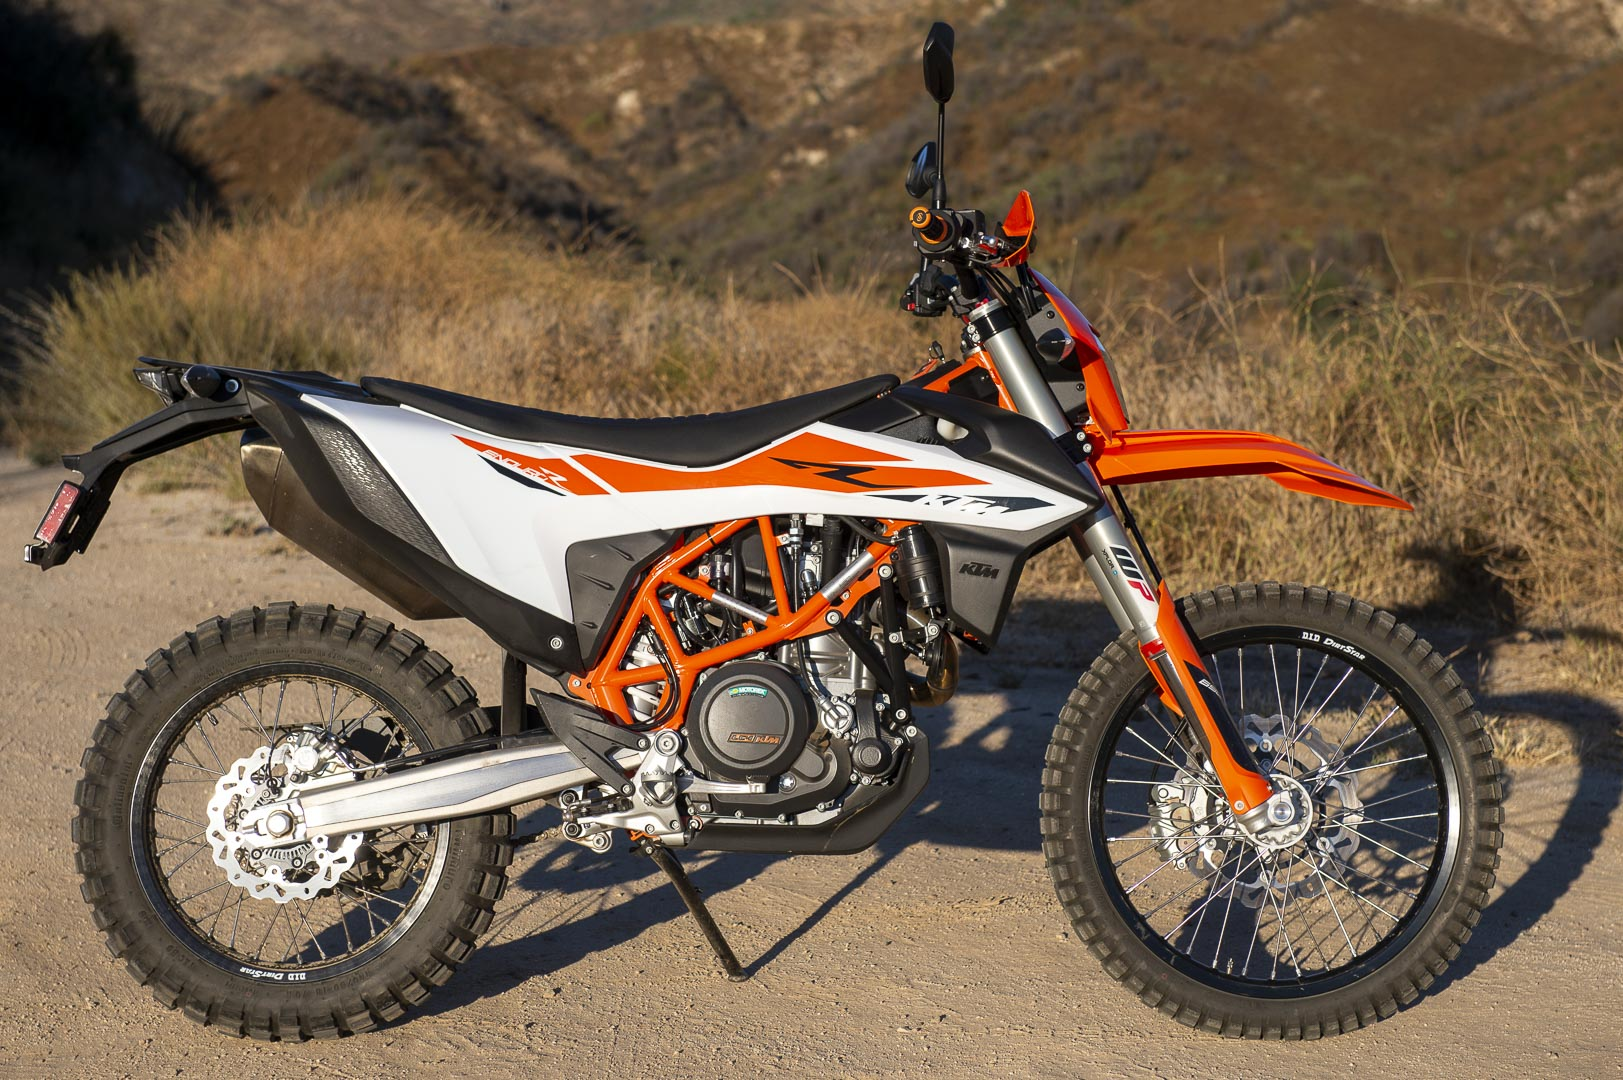 2019 KTM 690 Enduro R On-/Off-Road Review (16 Fast Facts)